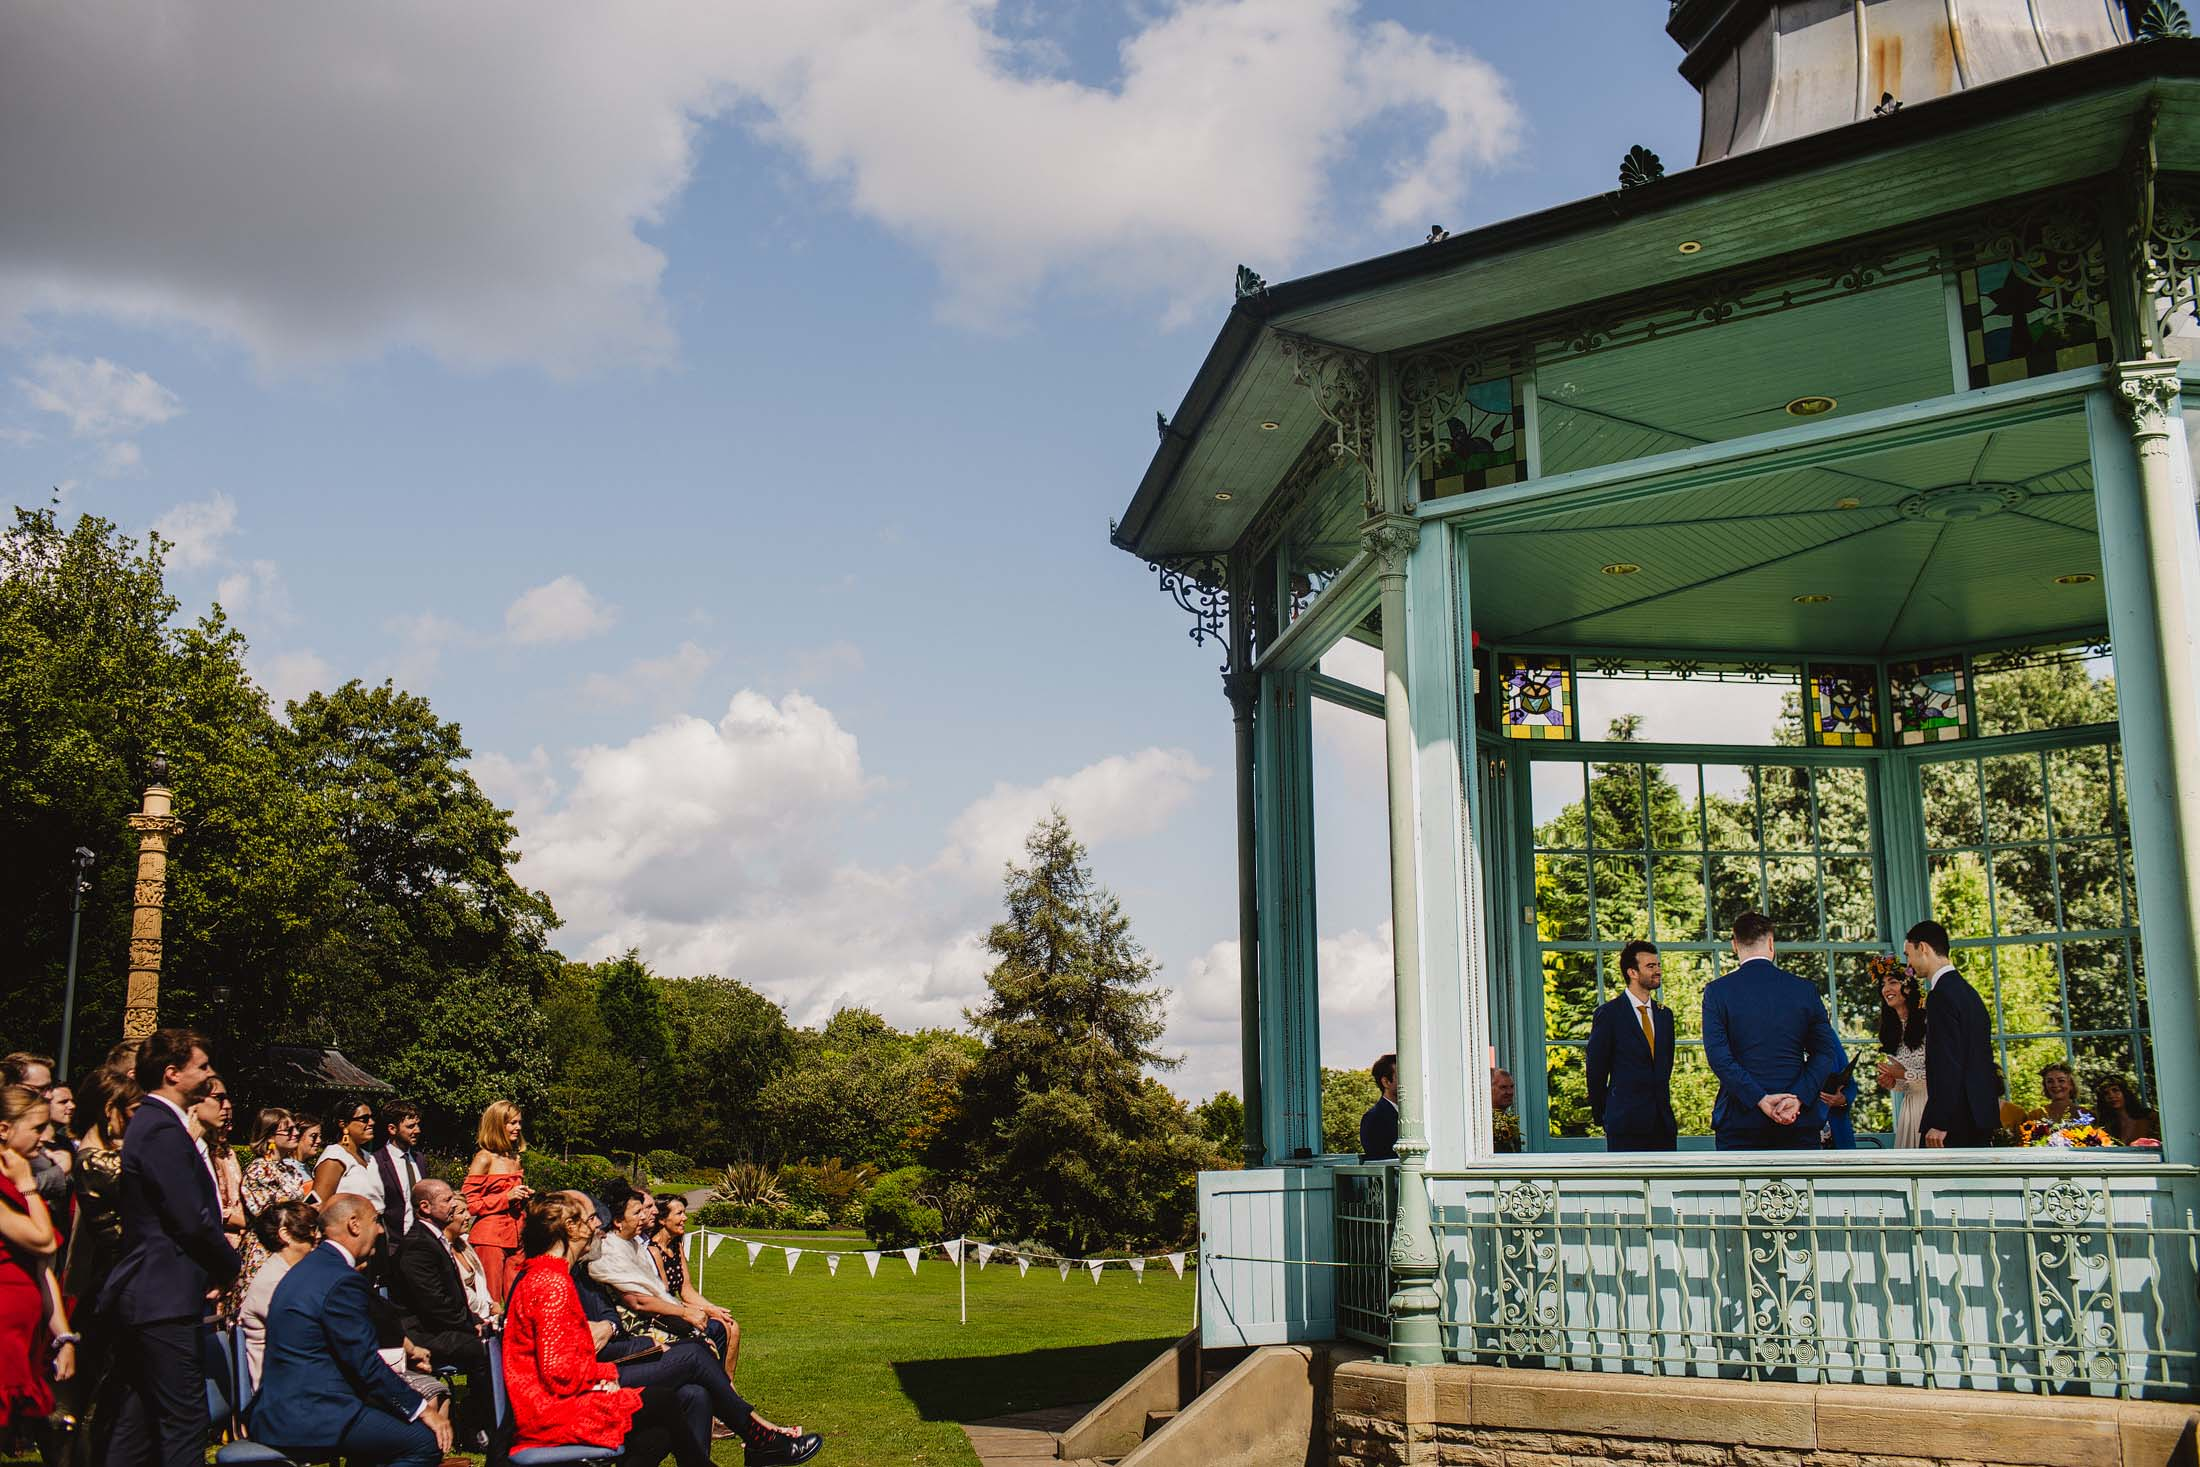 Sheffield bandstand the hide wedding